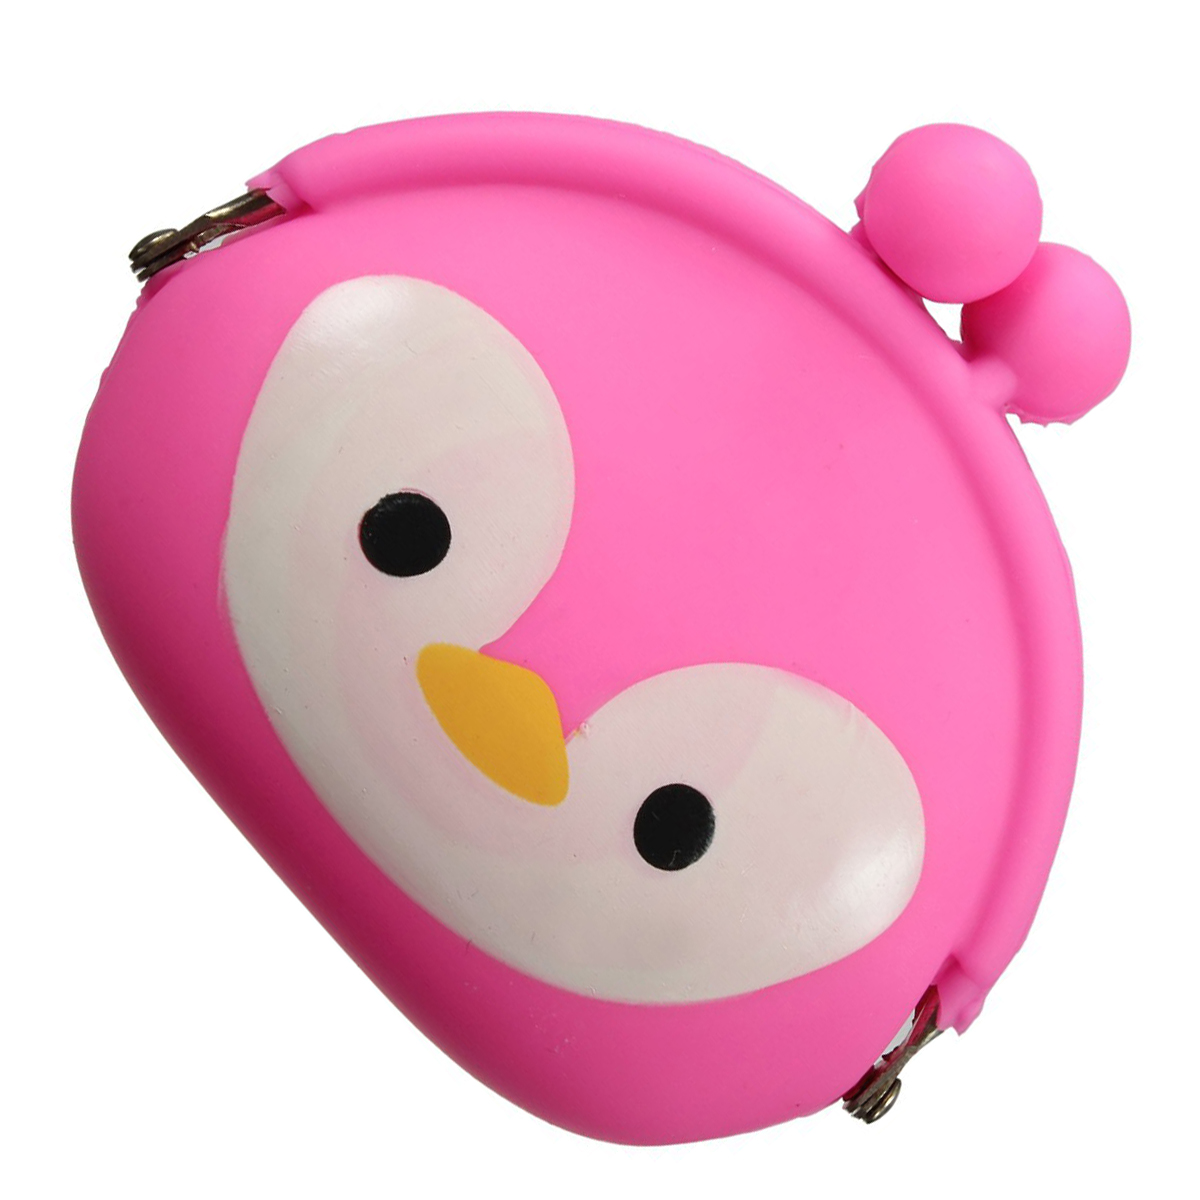 Women Girls Wallet Kawaii Cute Cartoon Animal Silicone Jelly Coin Bag Purse Kids Gift Penguin мягкая игрушка сюрприз собачка рокси и ее щенки just play